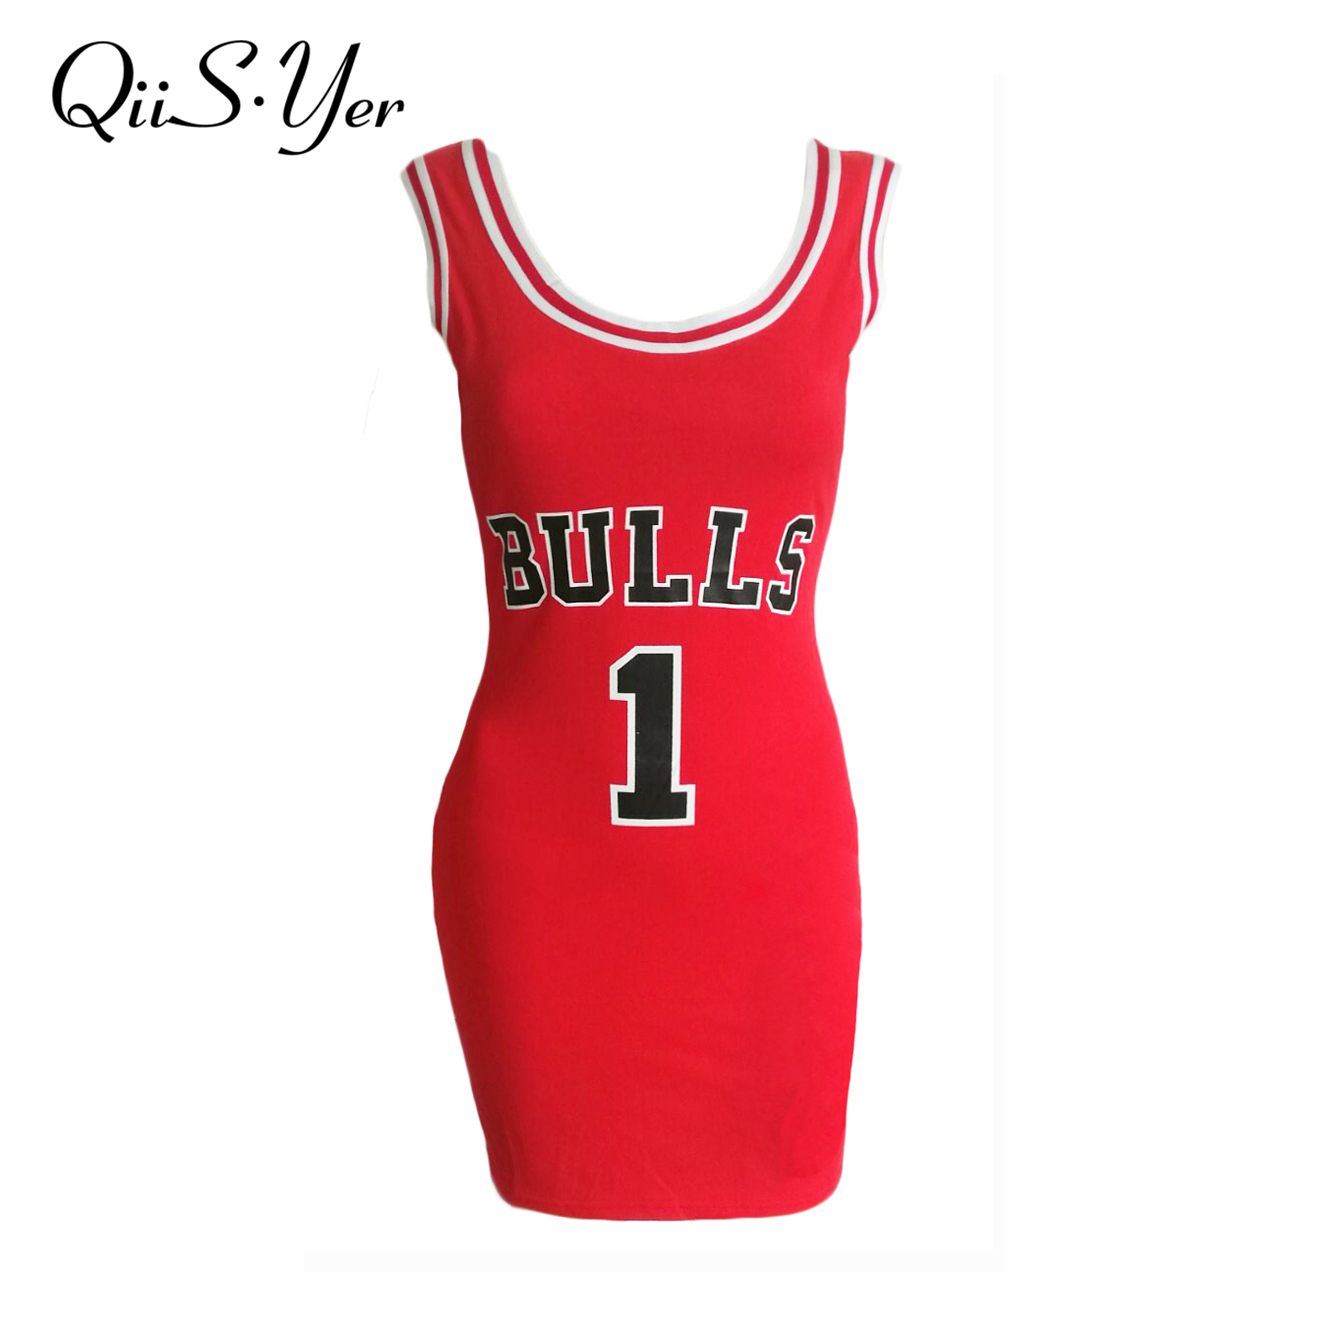 2017 Summer e Bulls Sporting Dress Women Cut Jersey Above Knee Length O-Neck Tunic Dresses Style Vestidos(China)